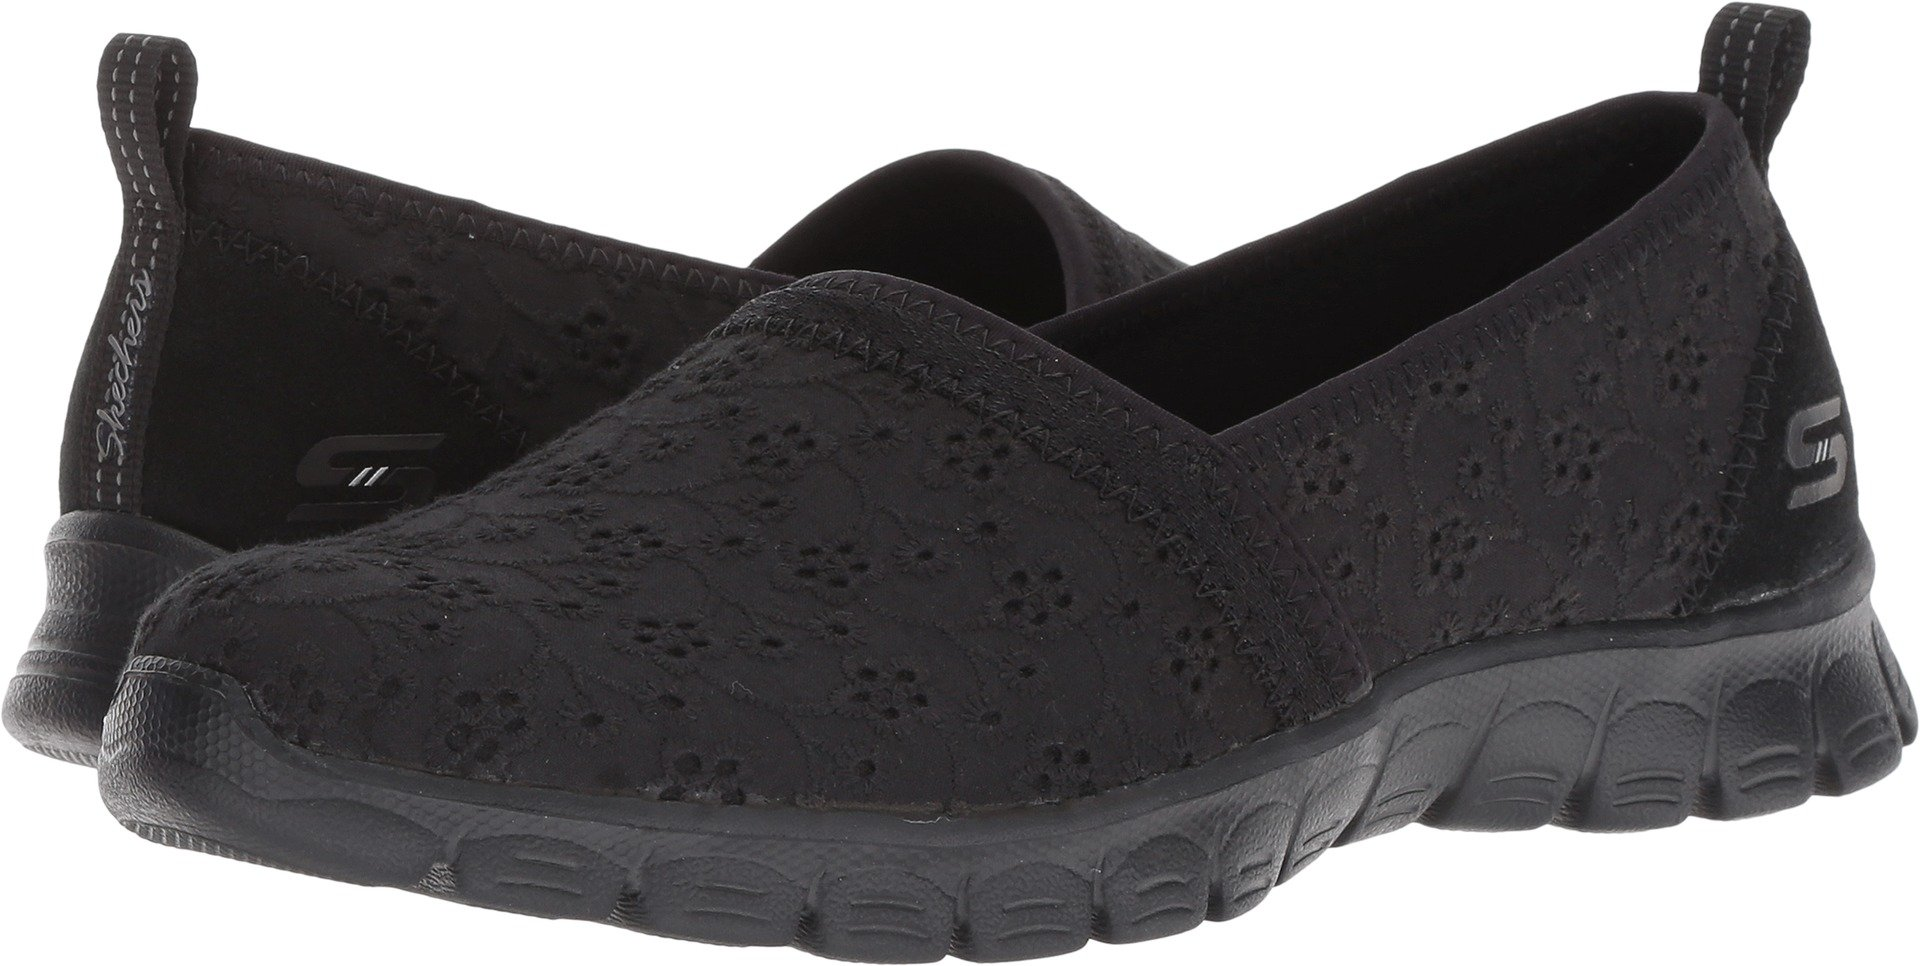 Skechers Ez Flex 3.0 Kindred Spirit Womens Slip On Sneakers,Black,9